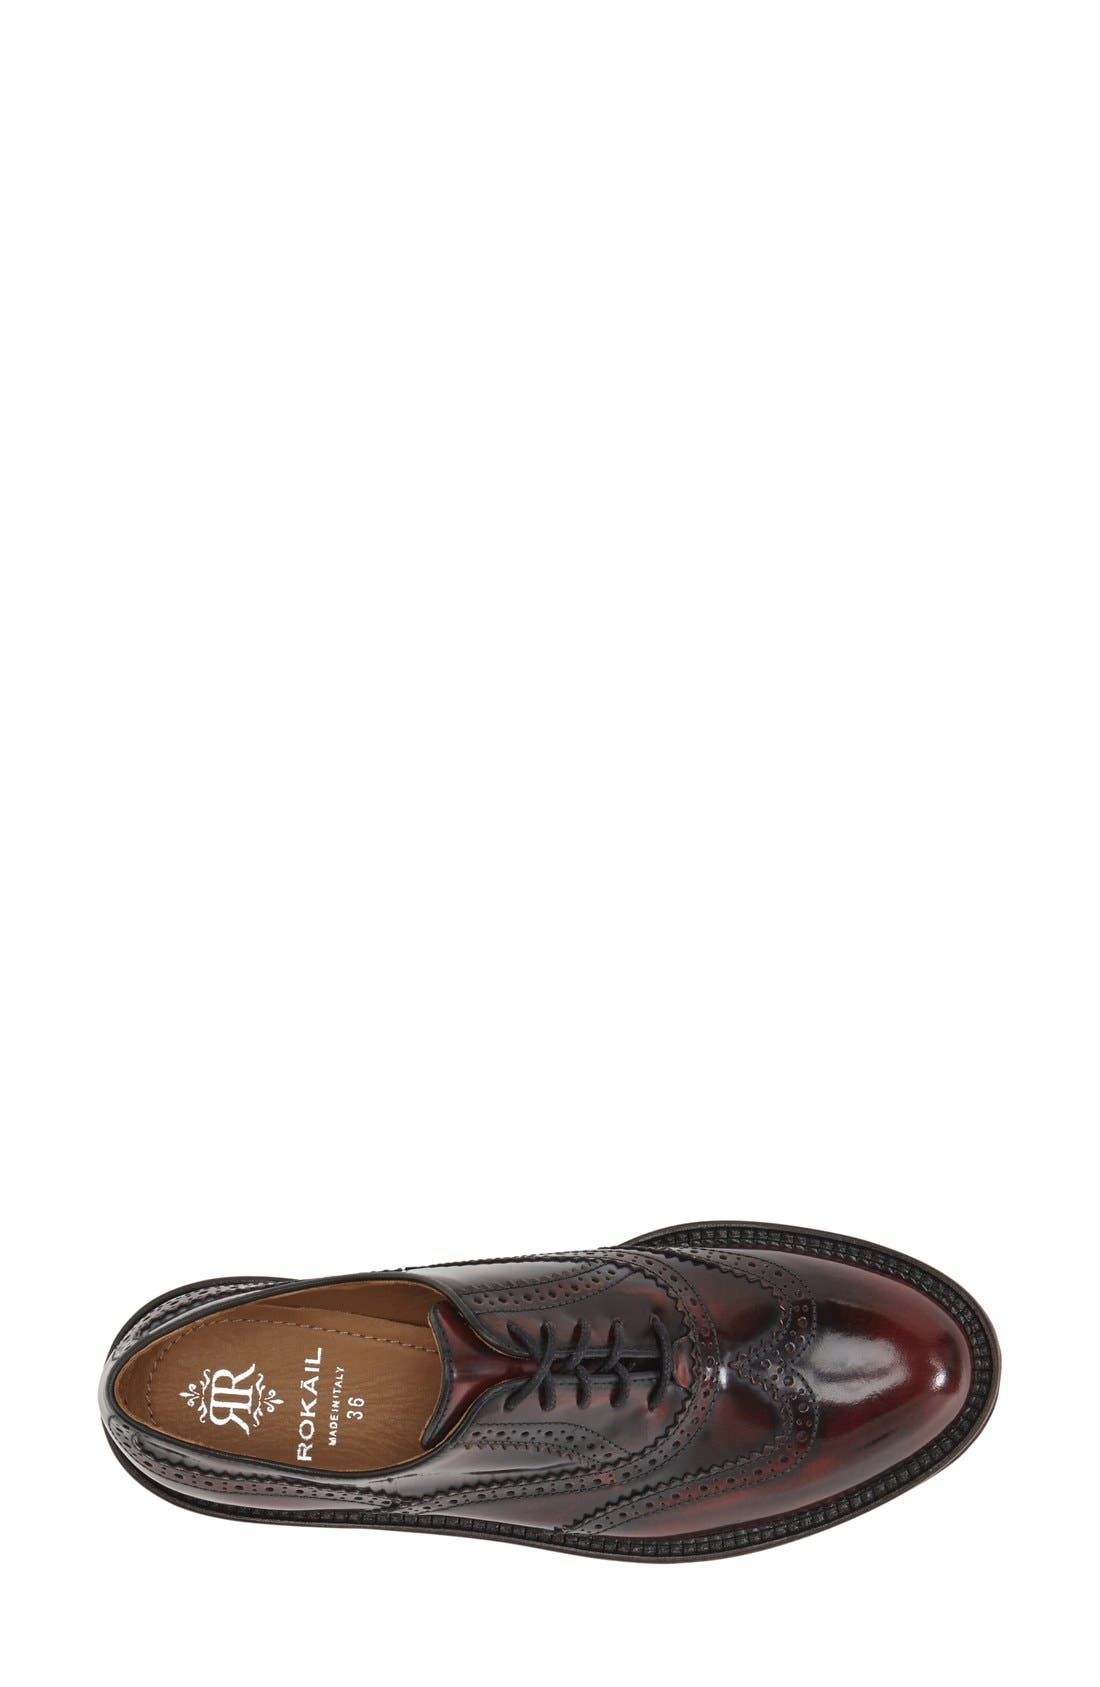 Alternate Image 3  - Rokail Wingtip Oxford (Women)